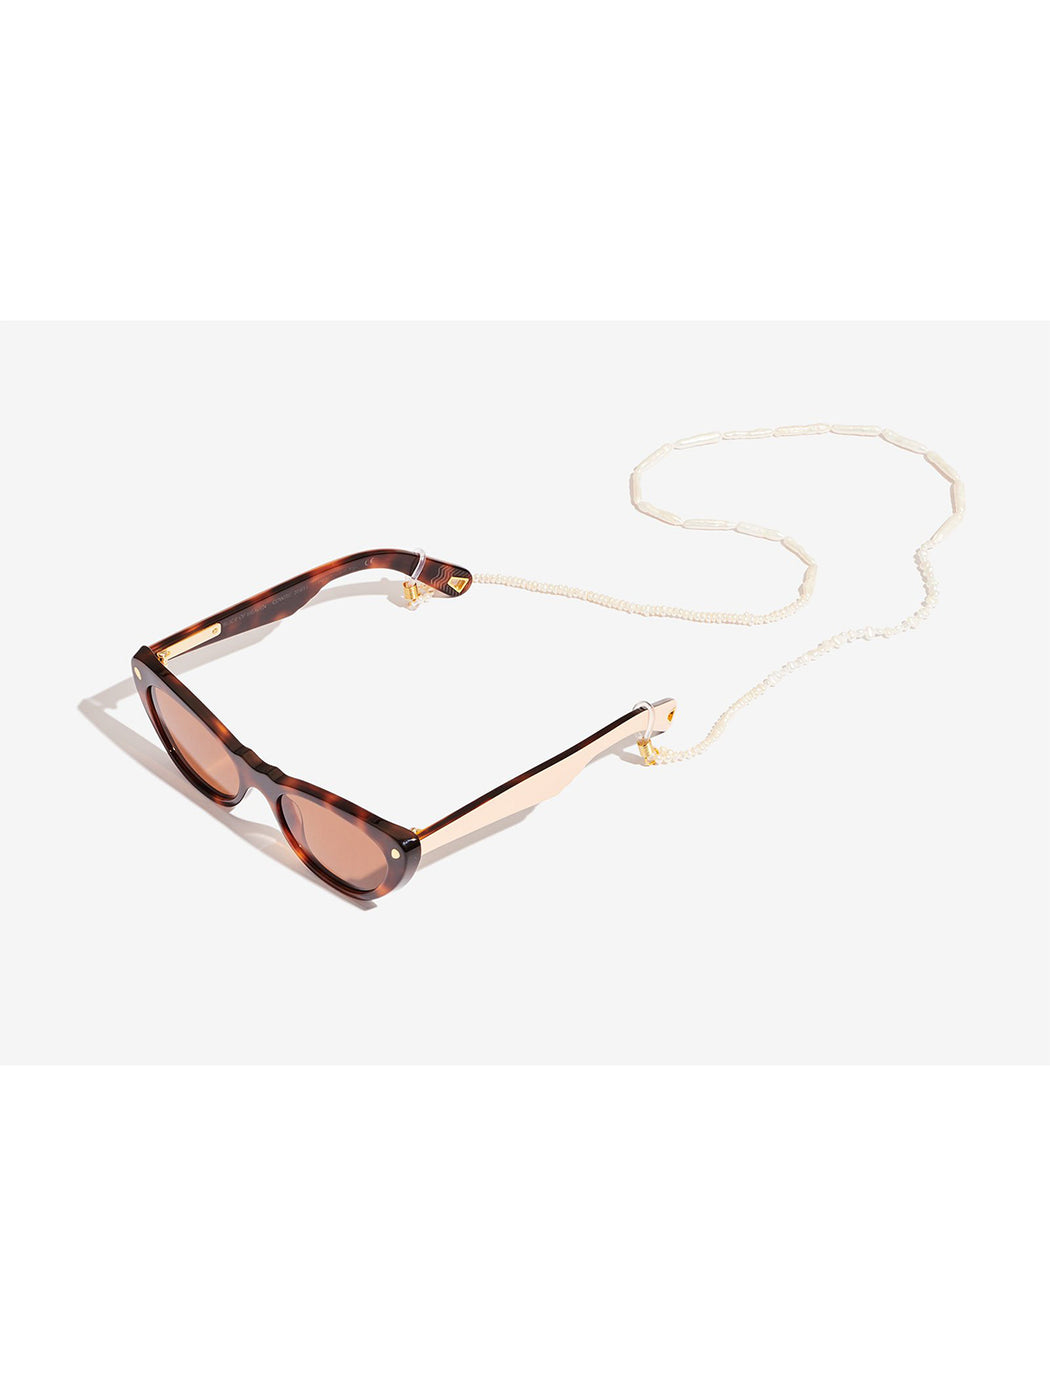 Pill Popper Eyewear Chain